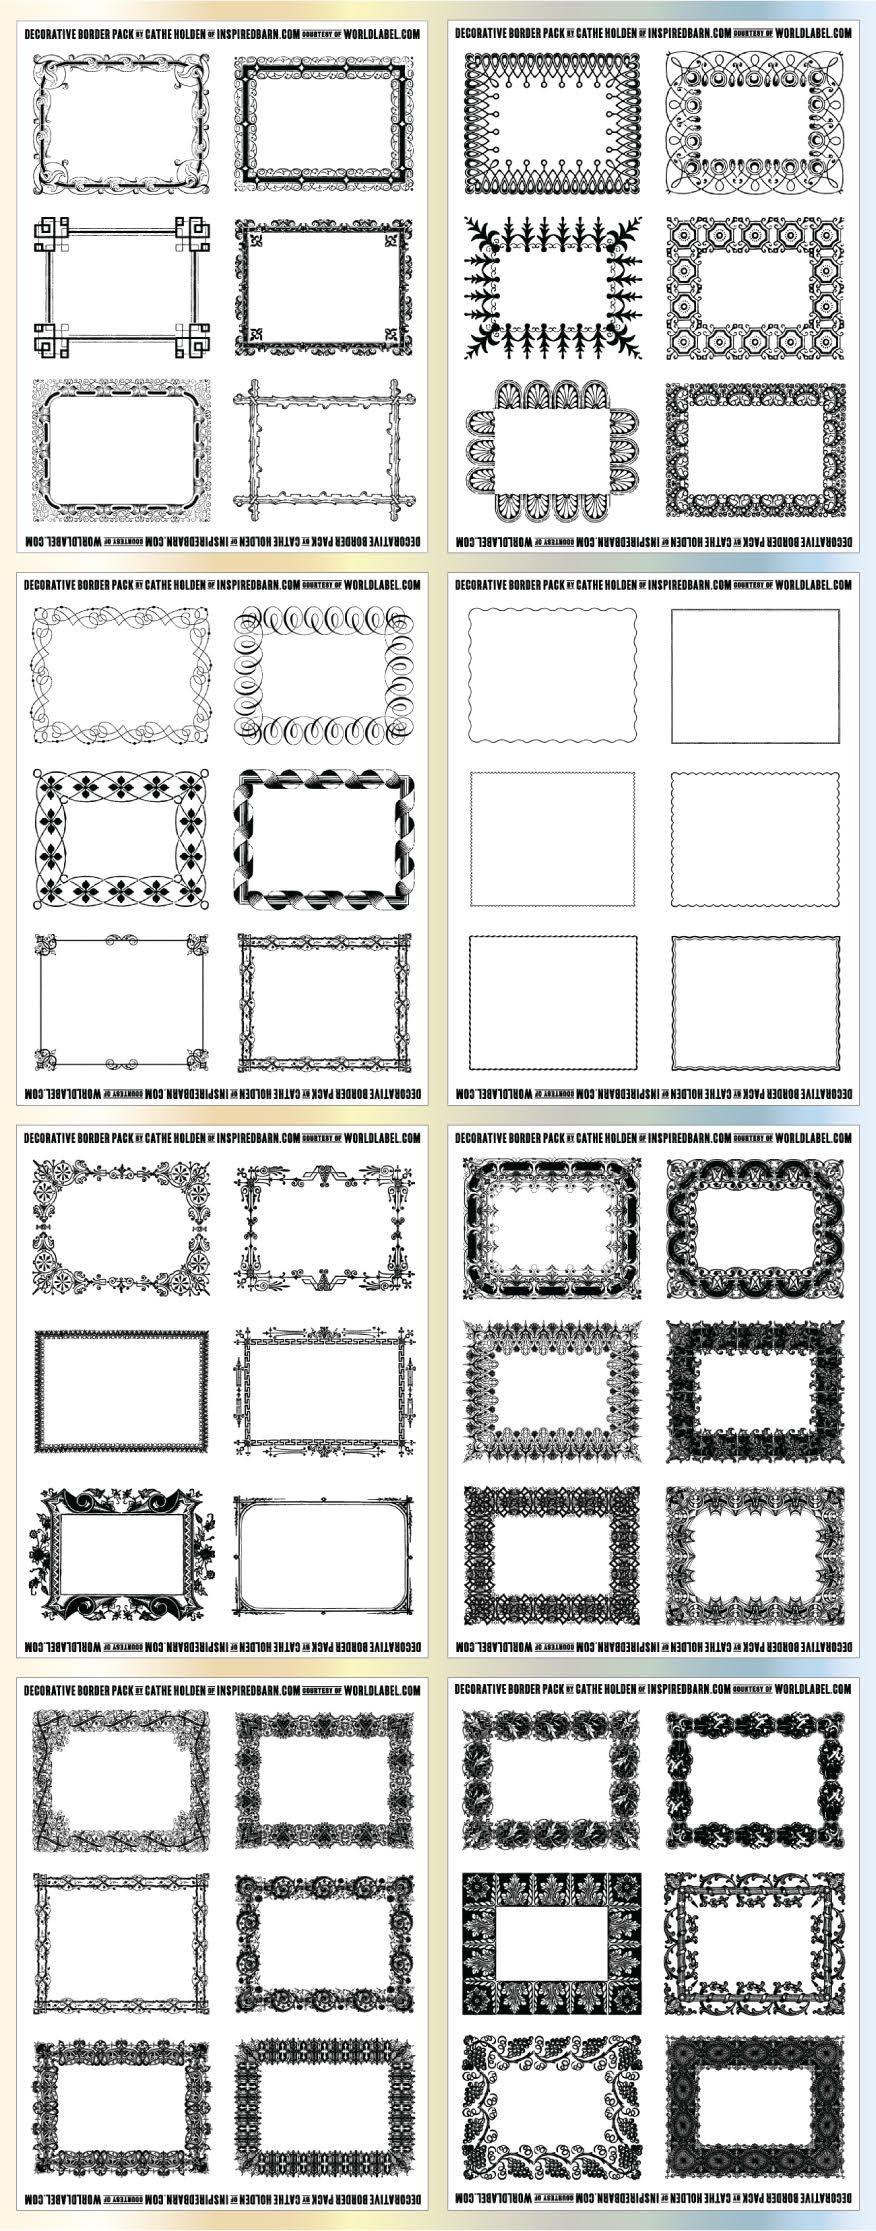 Free Printable Labels & Templates, Label Design @worldlabel Blog - Free Printable File Labels